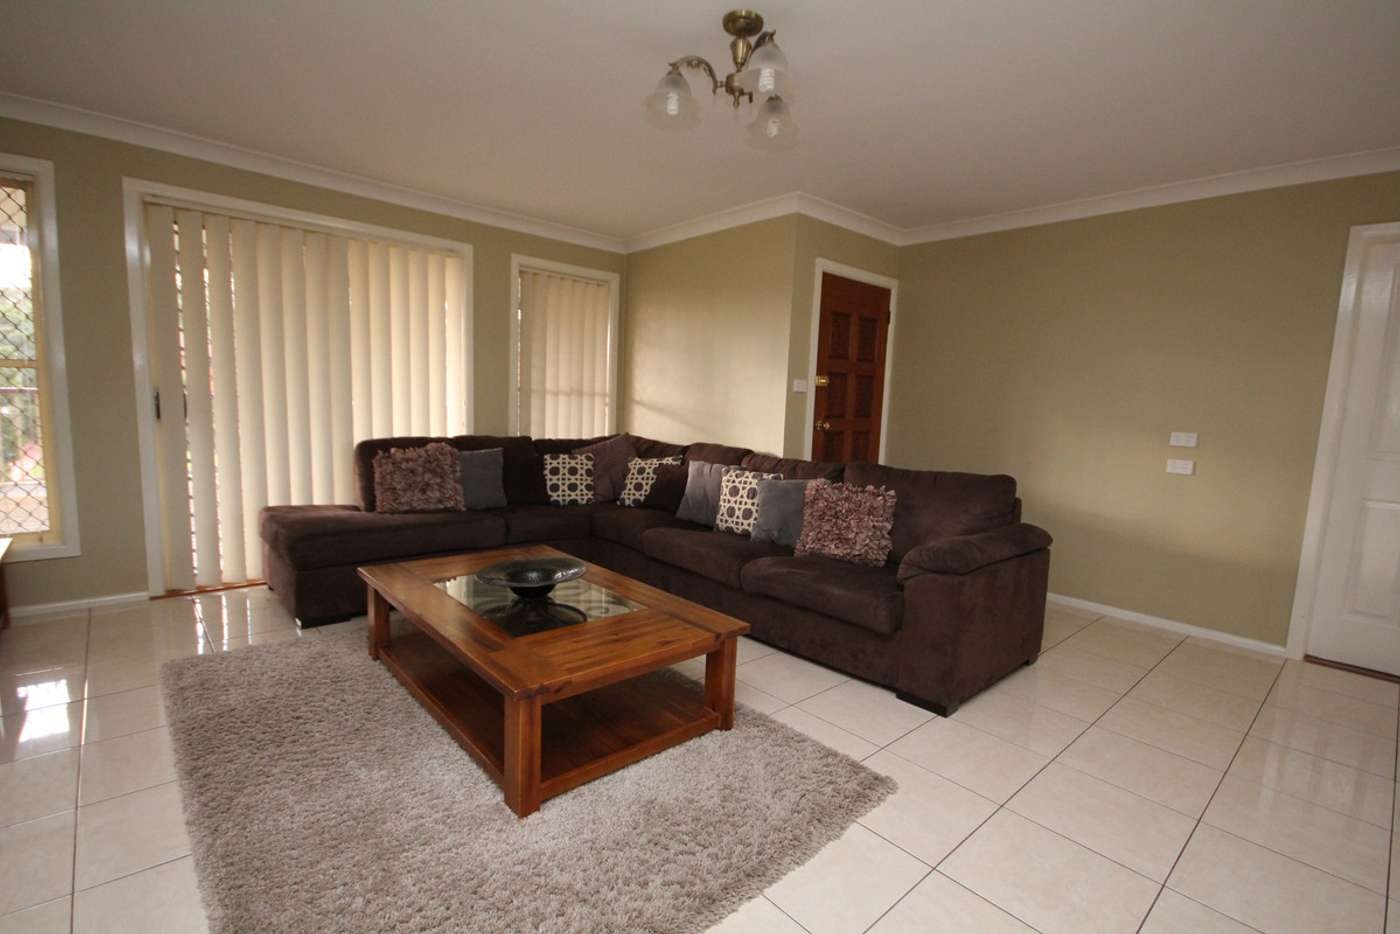 Seventh view of Homely house listing, 28 Alma Street, North Haven NSW 2443